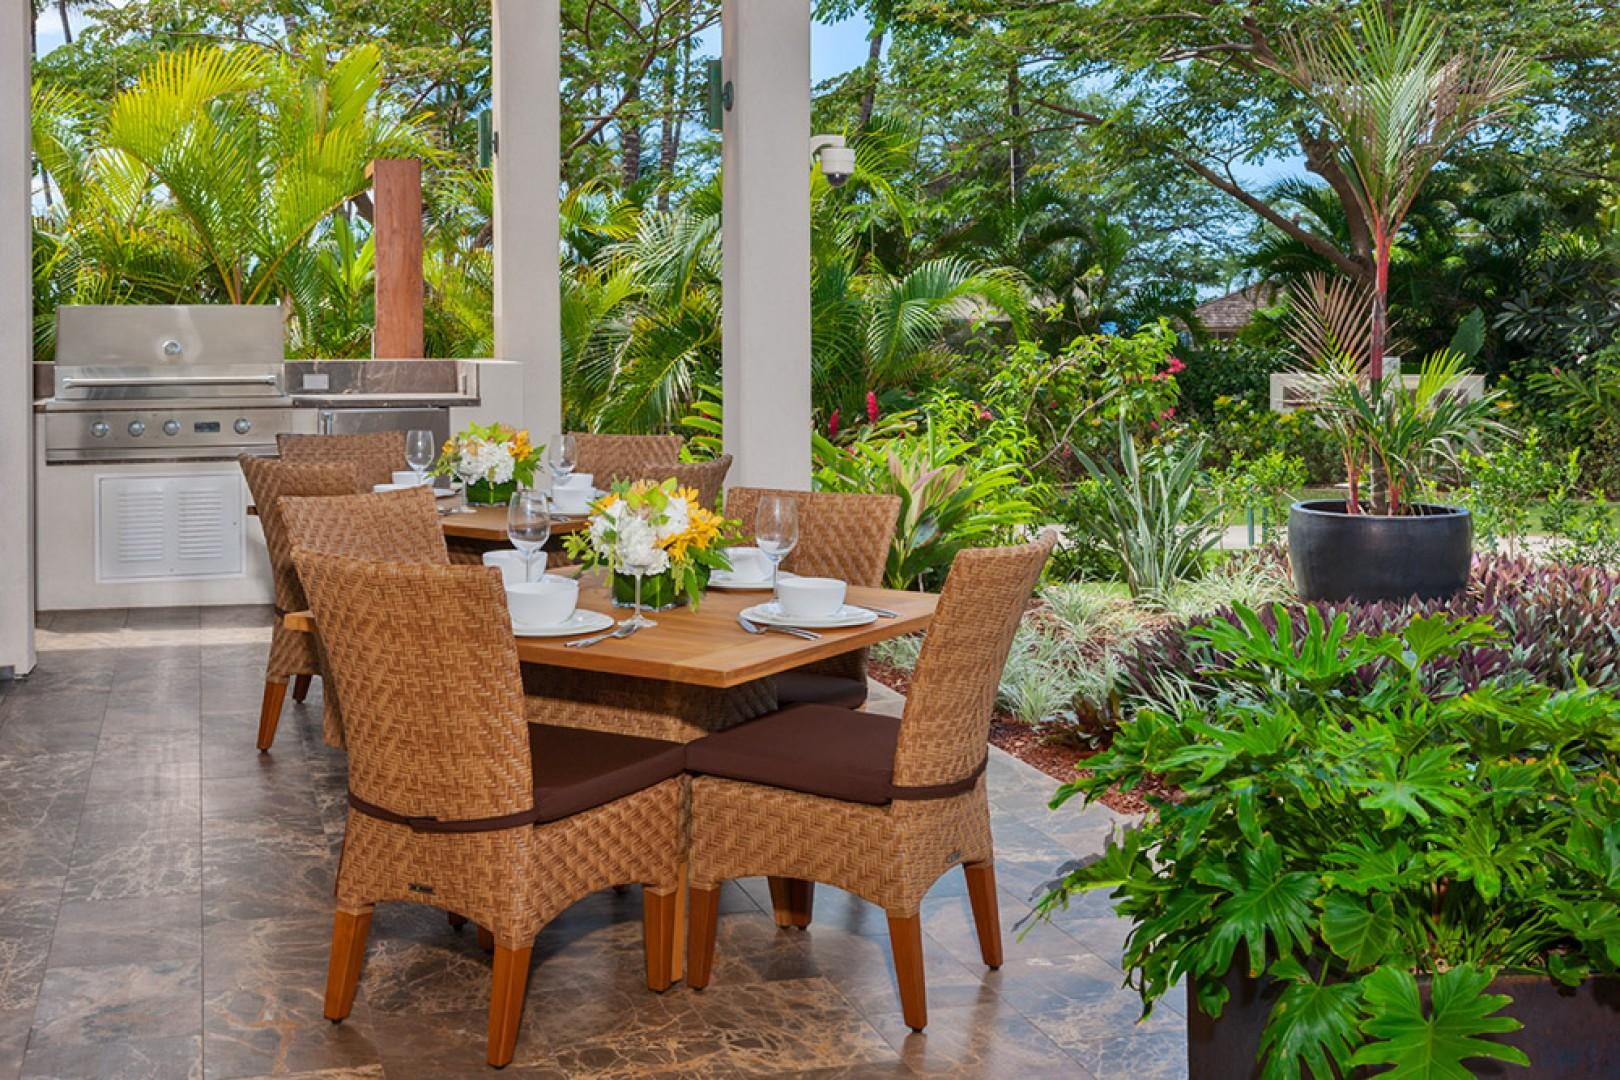 SeaGlass Villa 810 at Andaz Maui Wailea Resort - Your Own Private Paradise - A Covered Outdoor Dining Area with BBQ